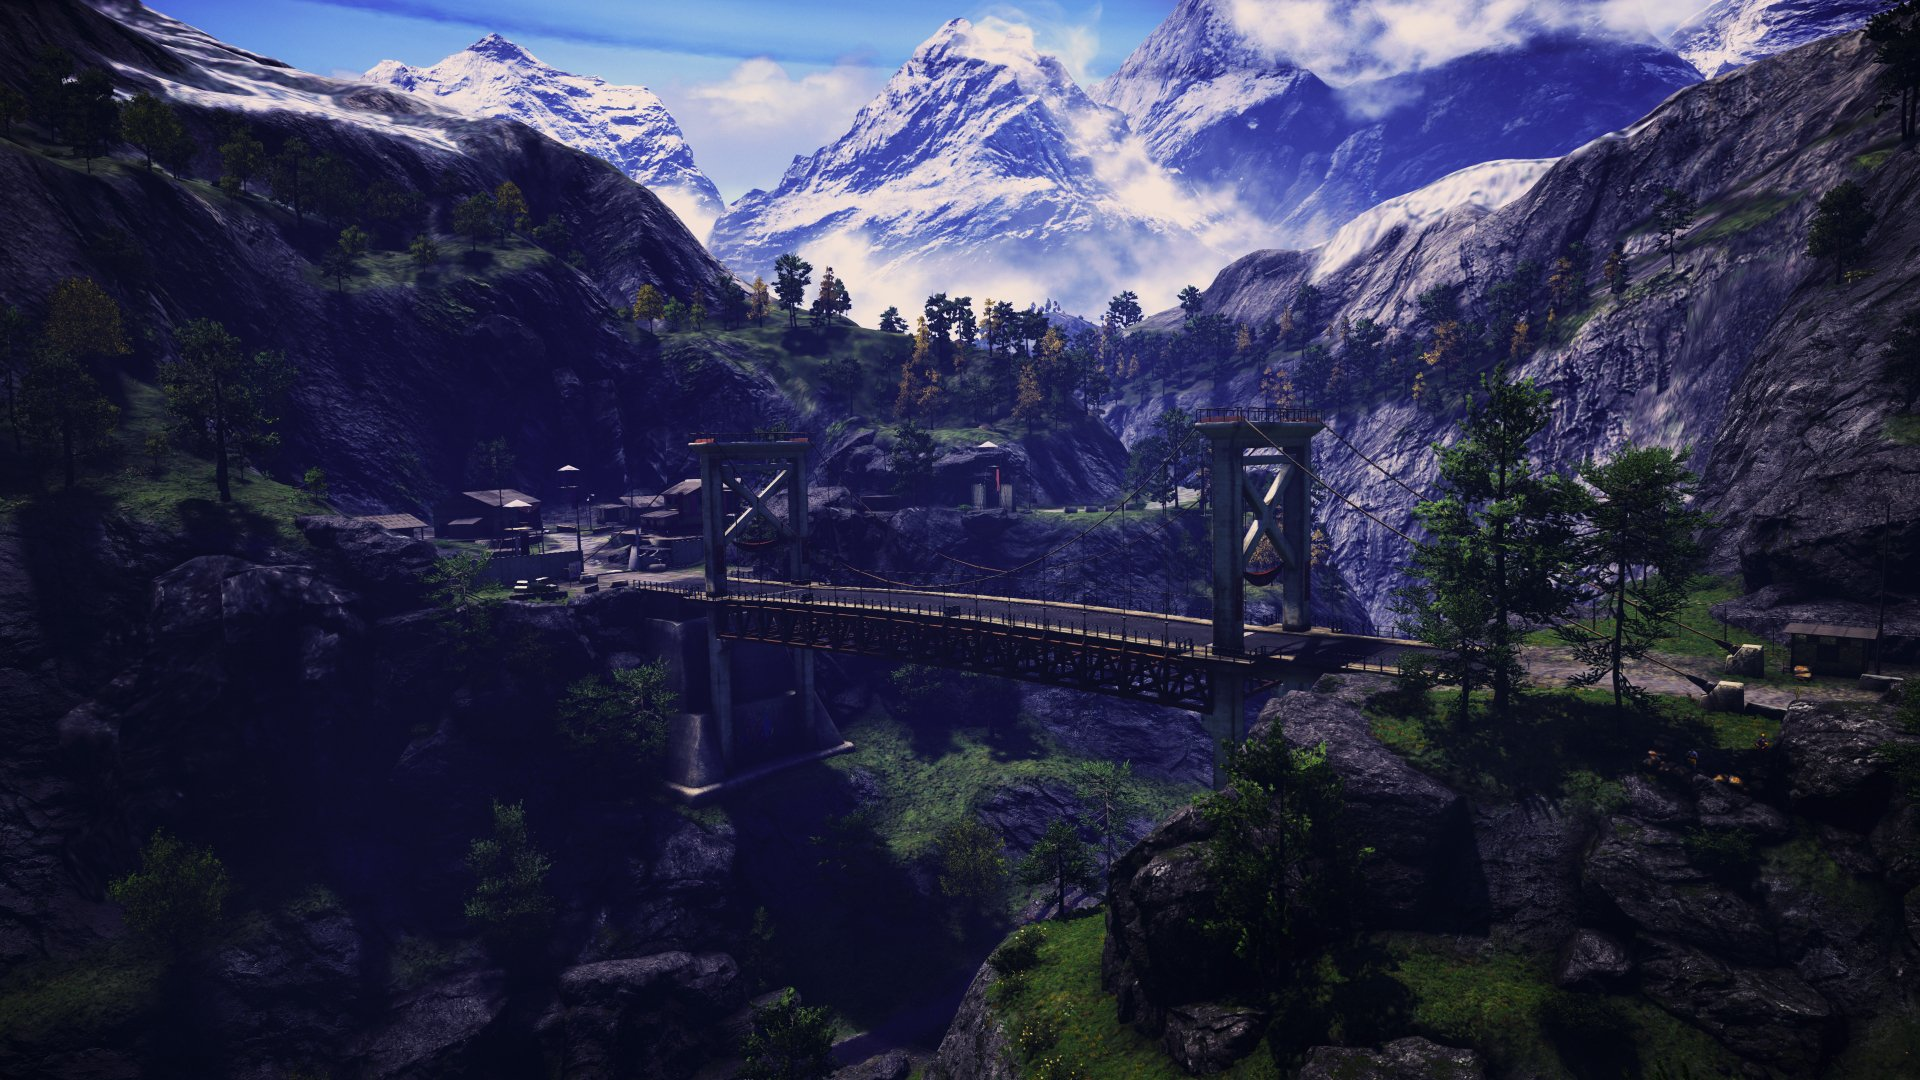 Far cry 4 bridge wallpaper 4k 4k ultra hd wallpaper - Desktop wallpaper 4k ...